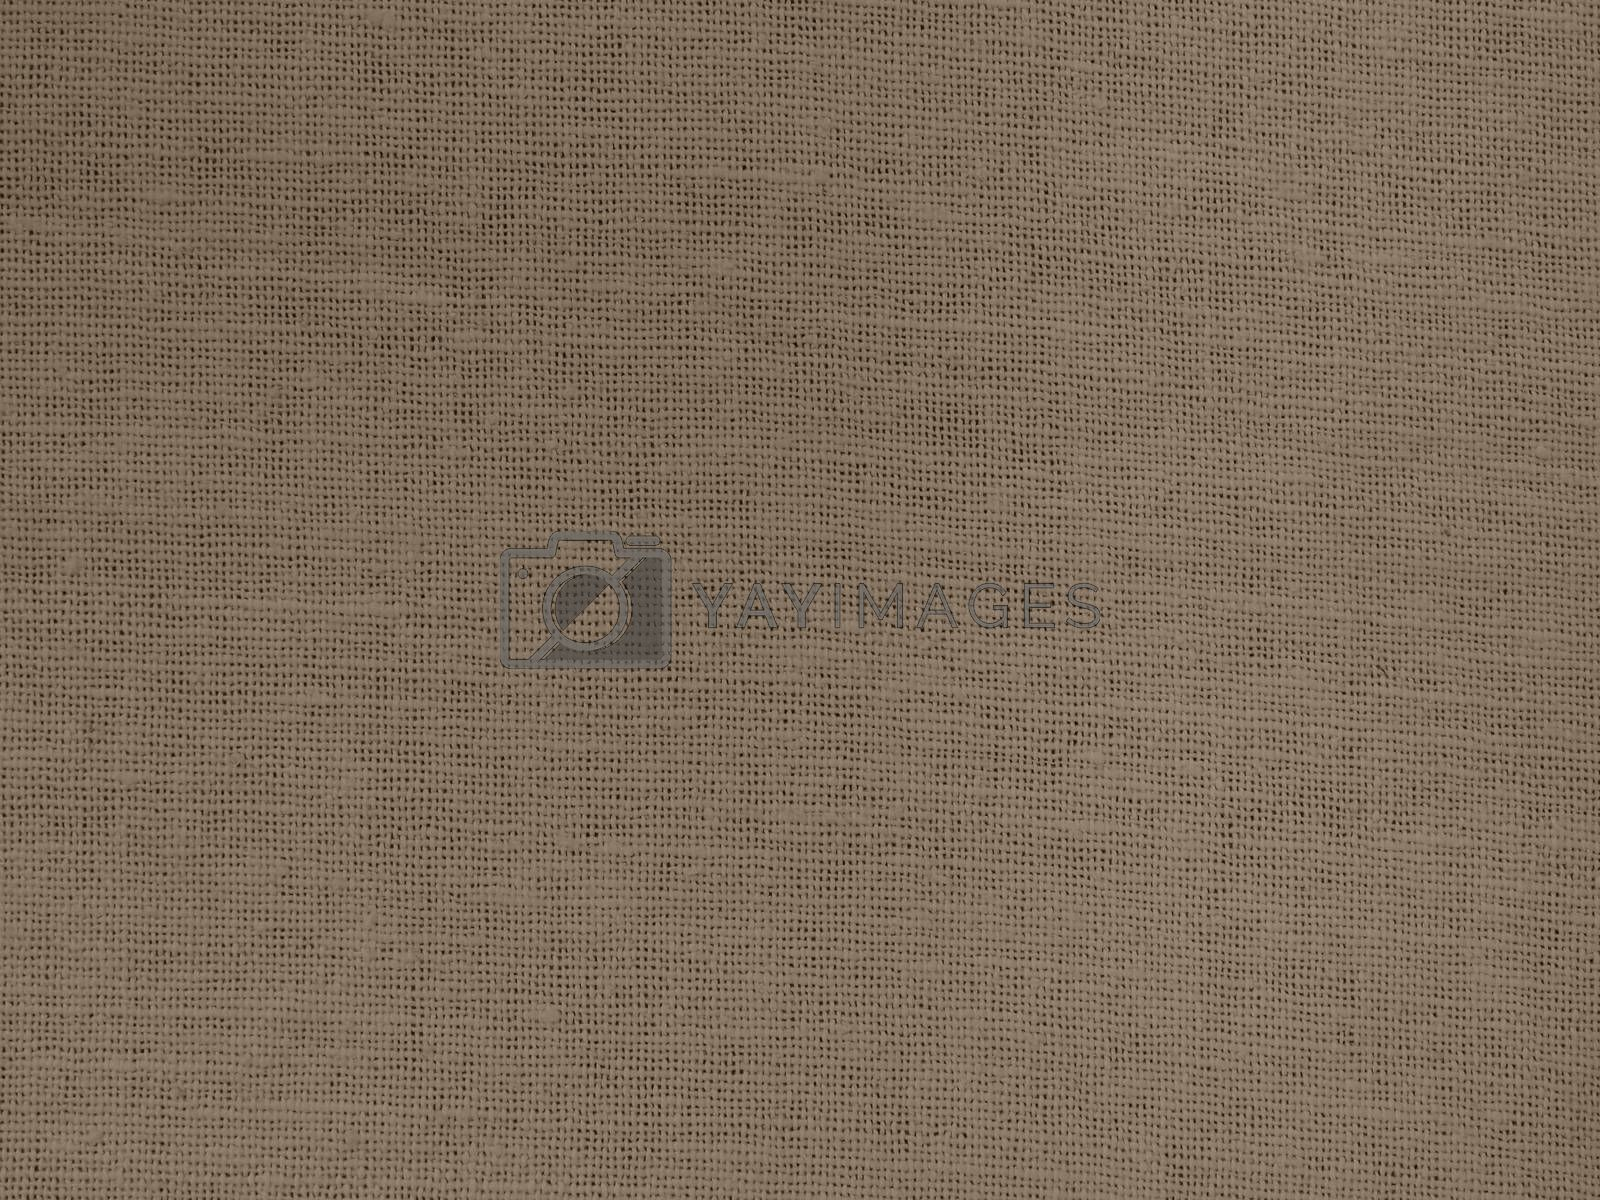 Brown cotton cloth to use as a background.